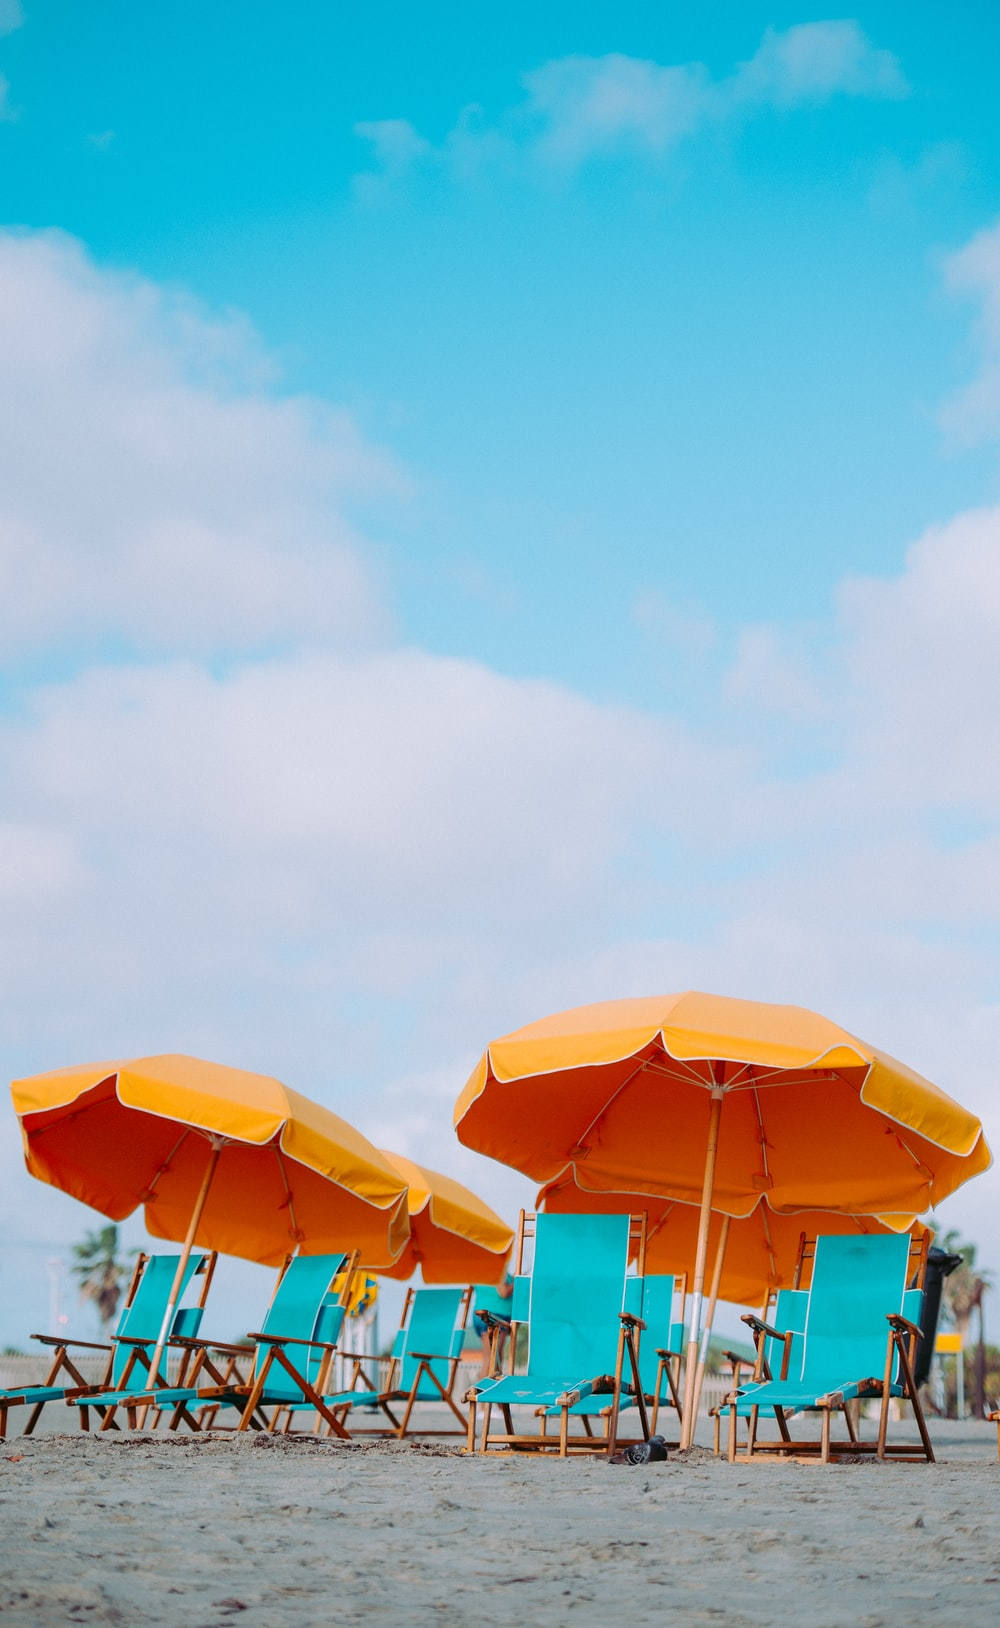 closeup photo of lounger chairs and beach umbrellas